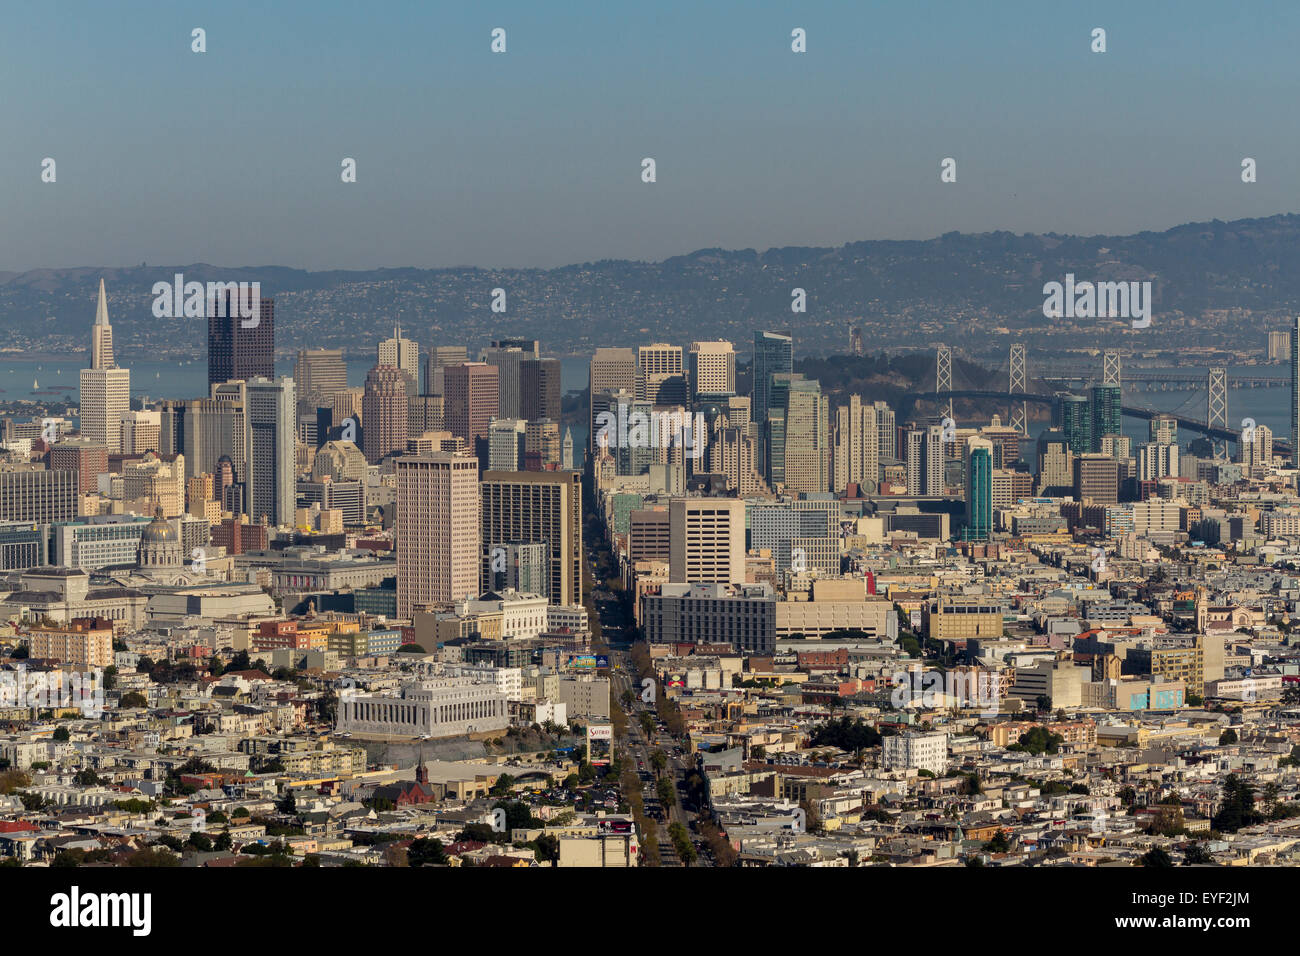 The City Of San Francisco from Twin Peaks, high above The City giving  tremendous views of the city , San Francisco Stock Photo